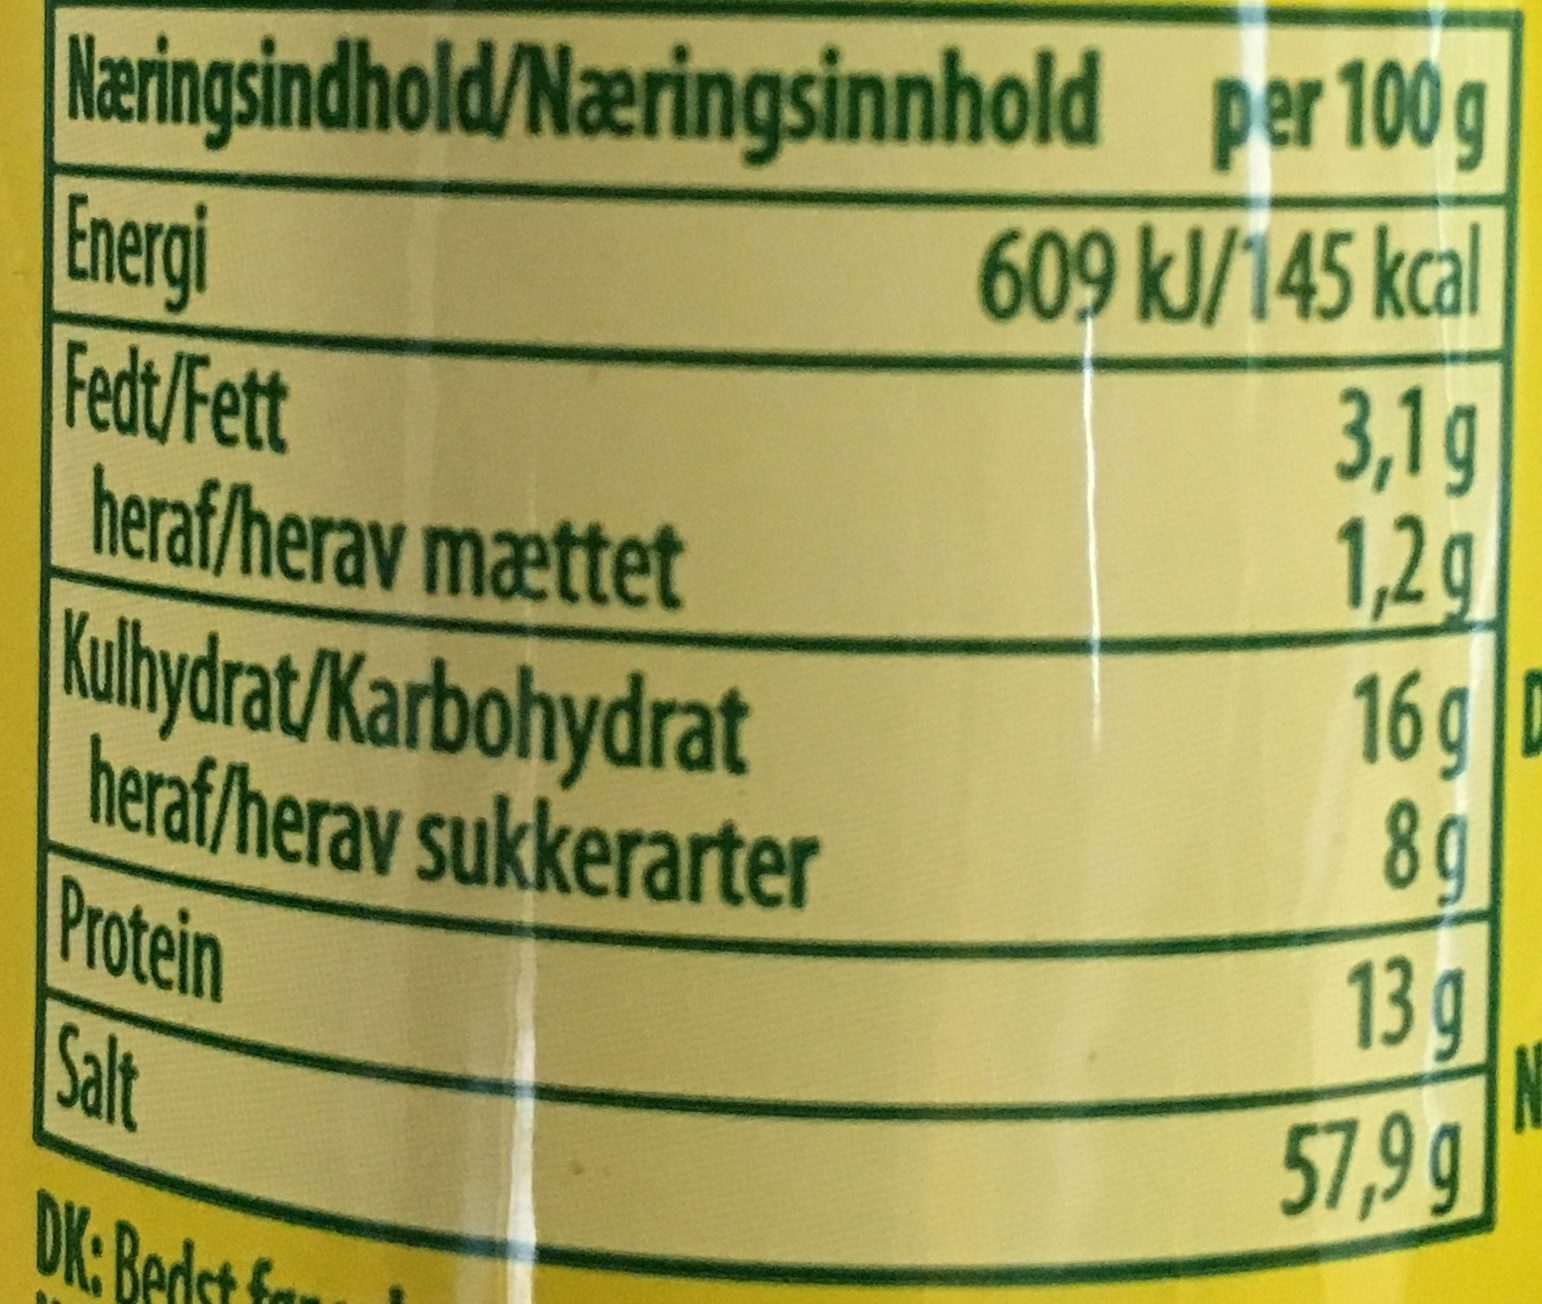 Knorr Aromat - Nutrition facts - fr